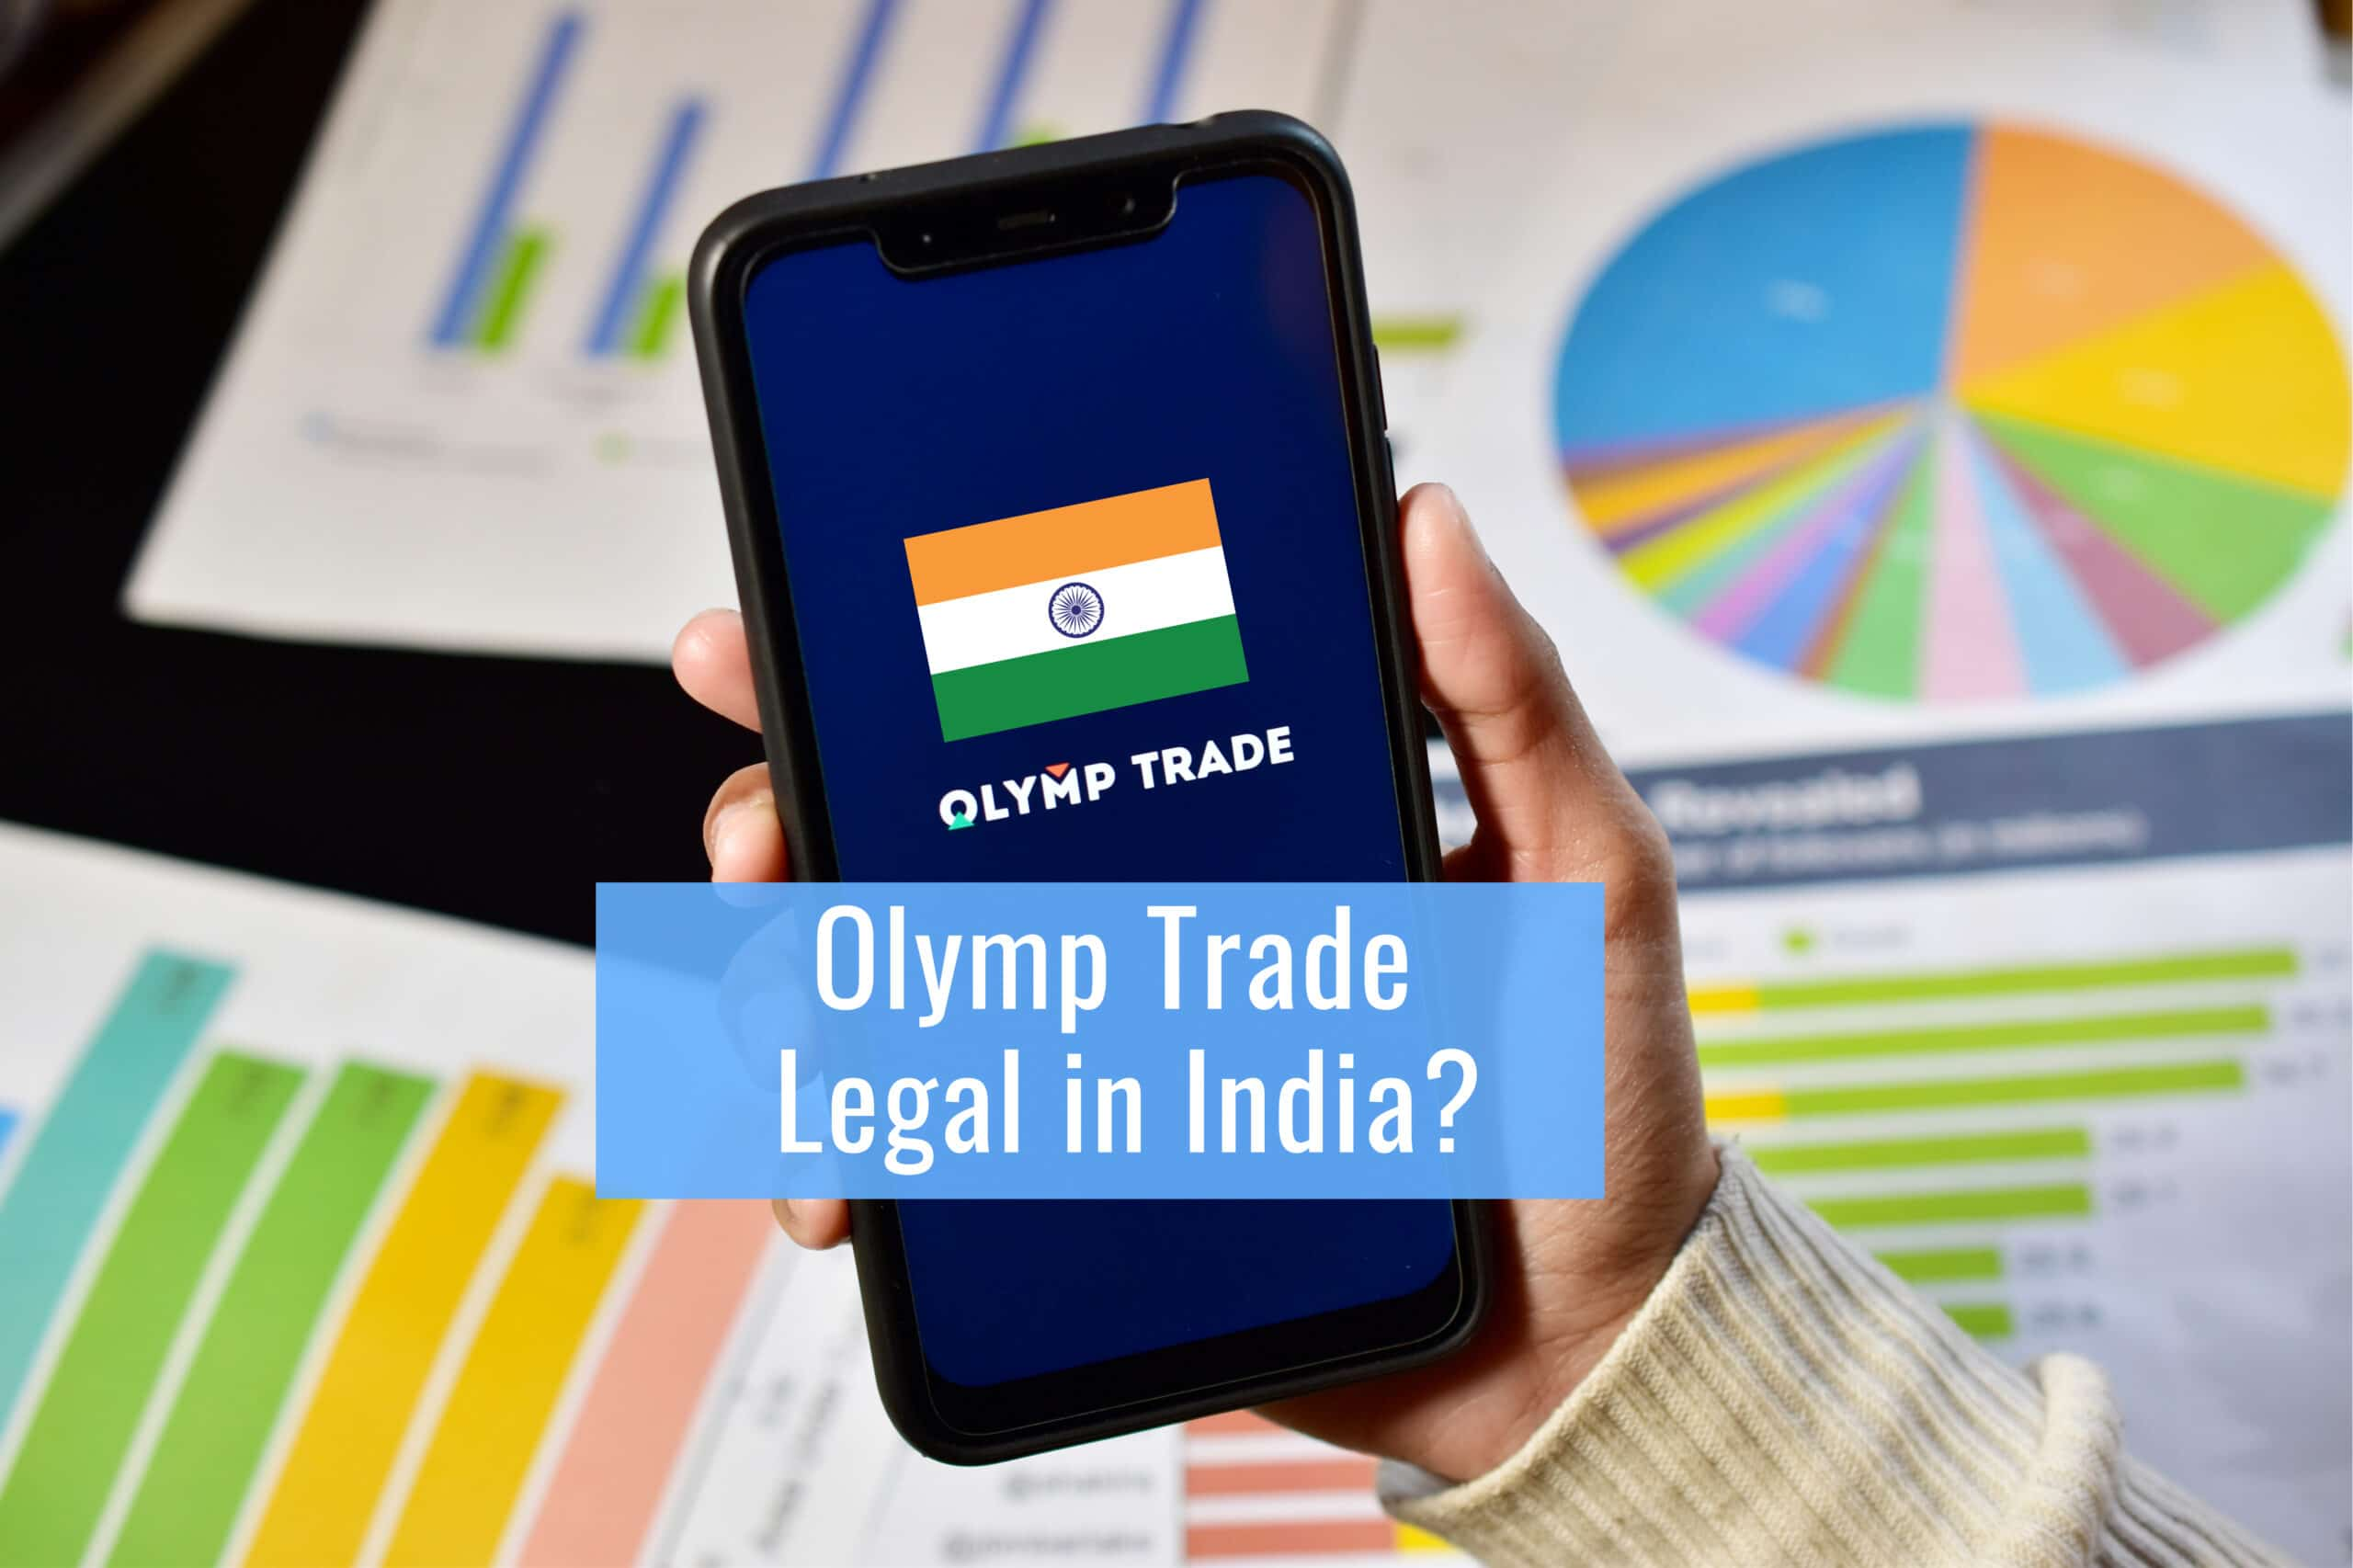 Olymp Trade Legal in India